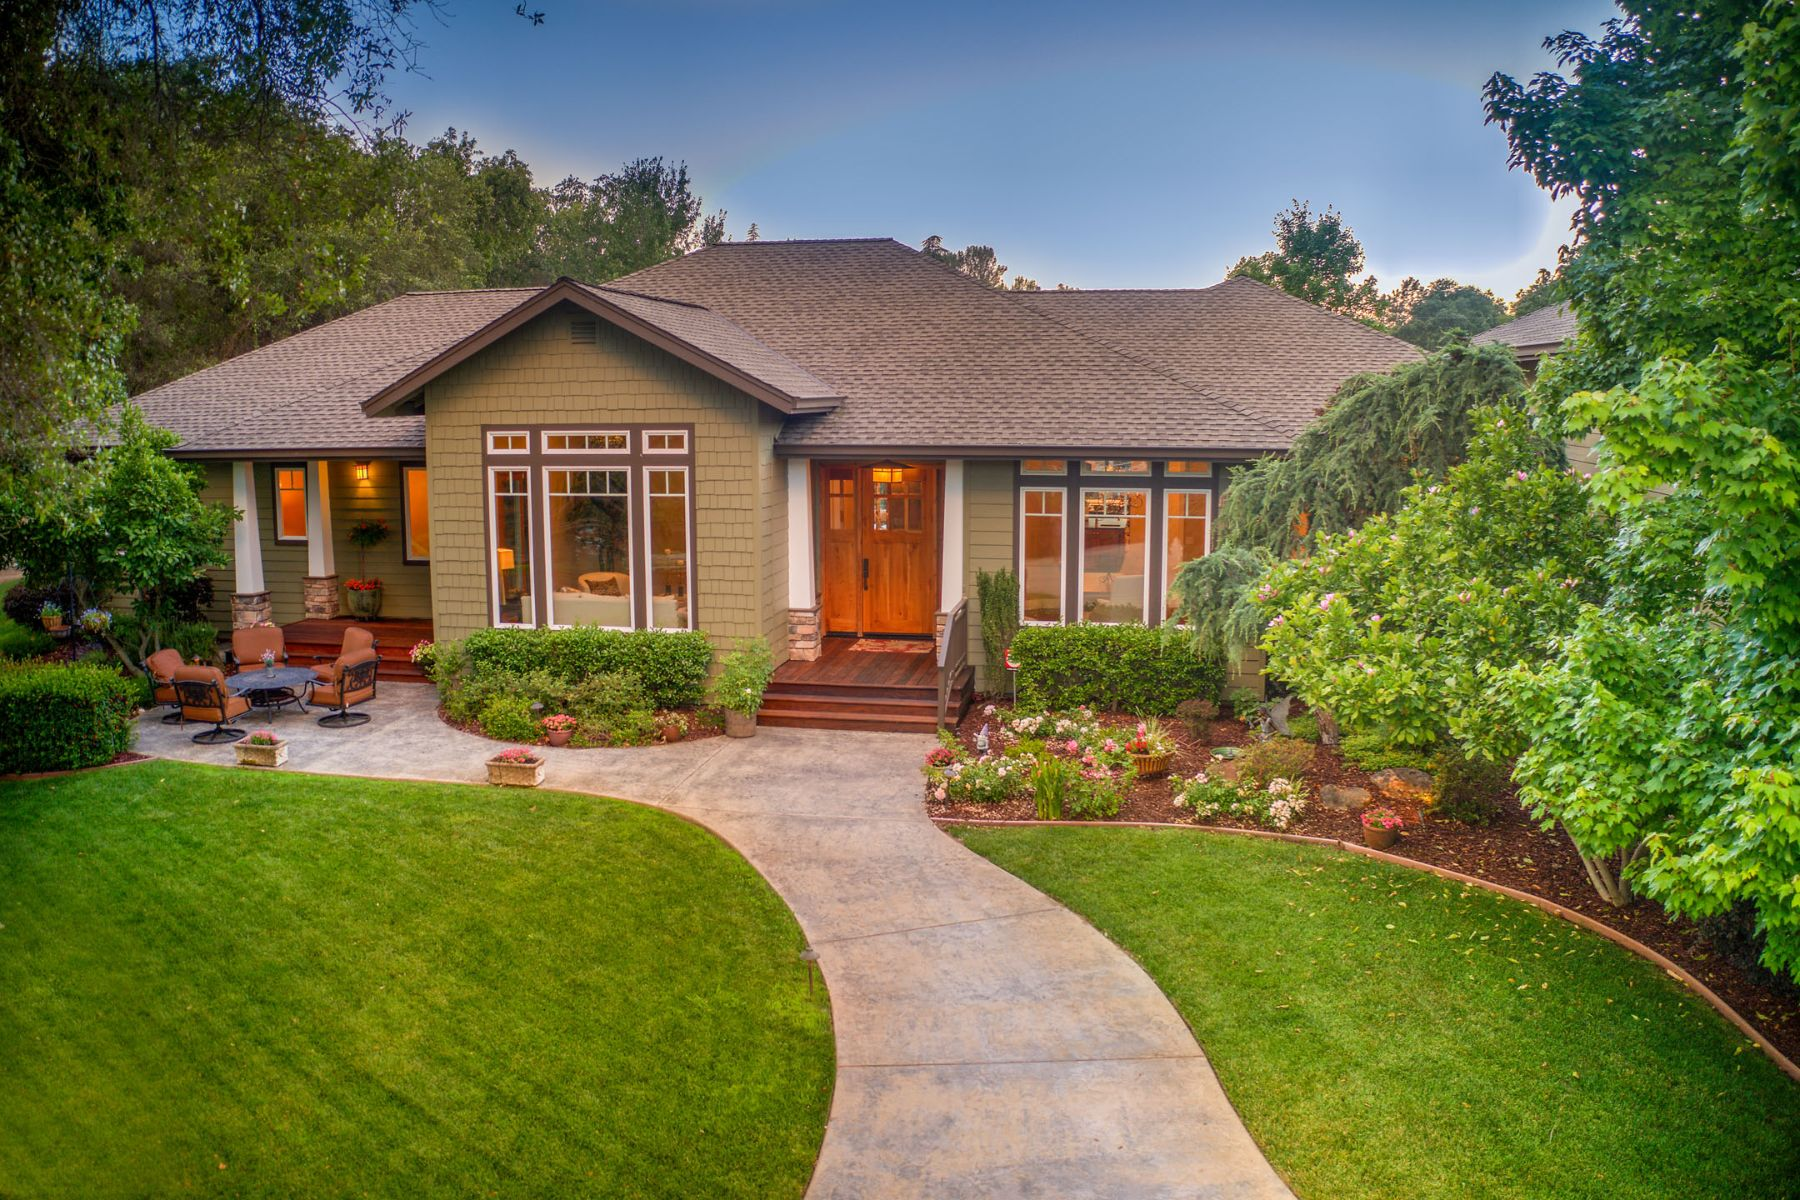 Single Family Homes for Active at 3350 Brennans Rd, Loomis, CA 95650 3350 Brennans Rd Loomis, California 95650 United States